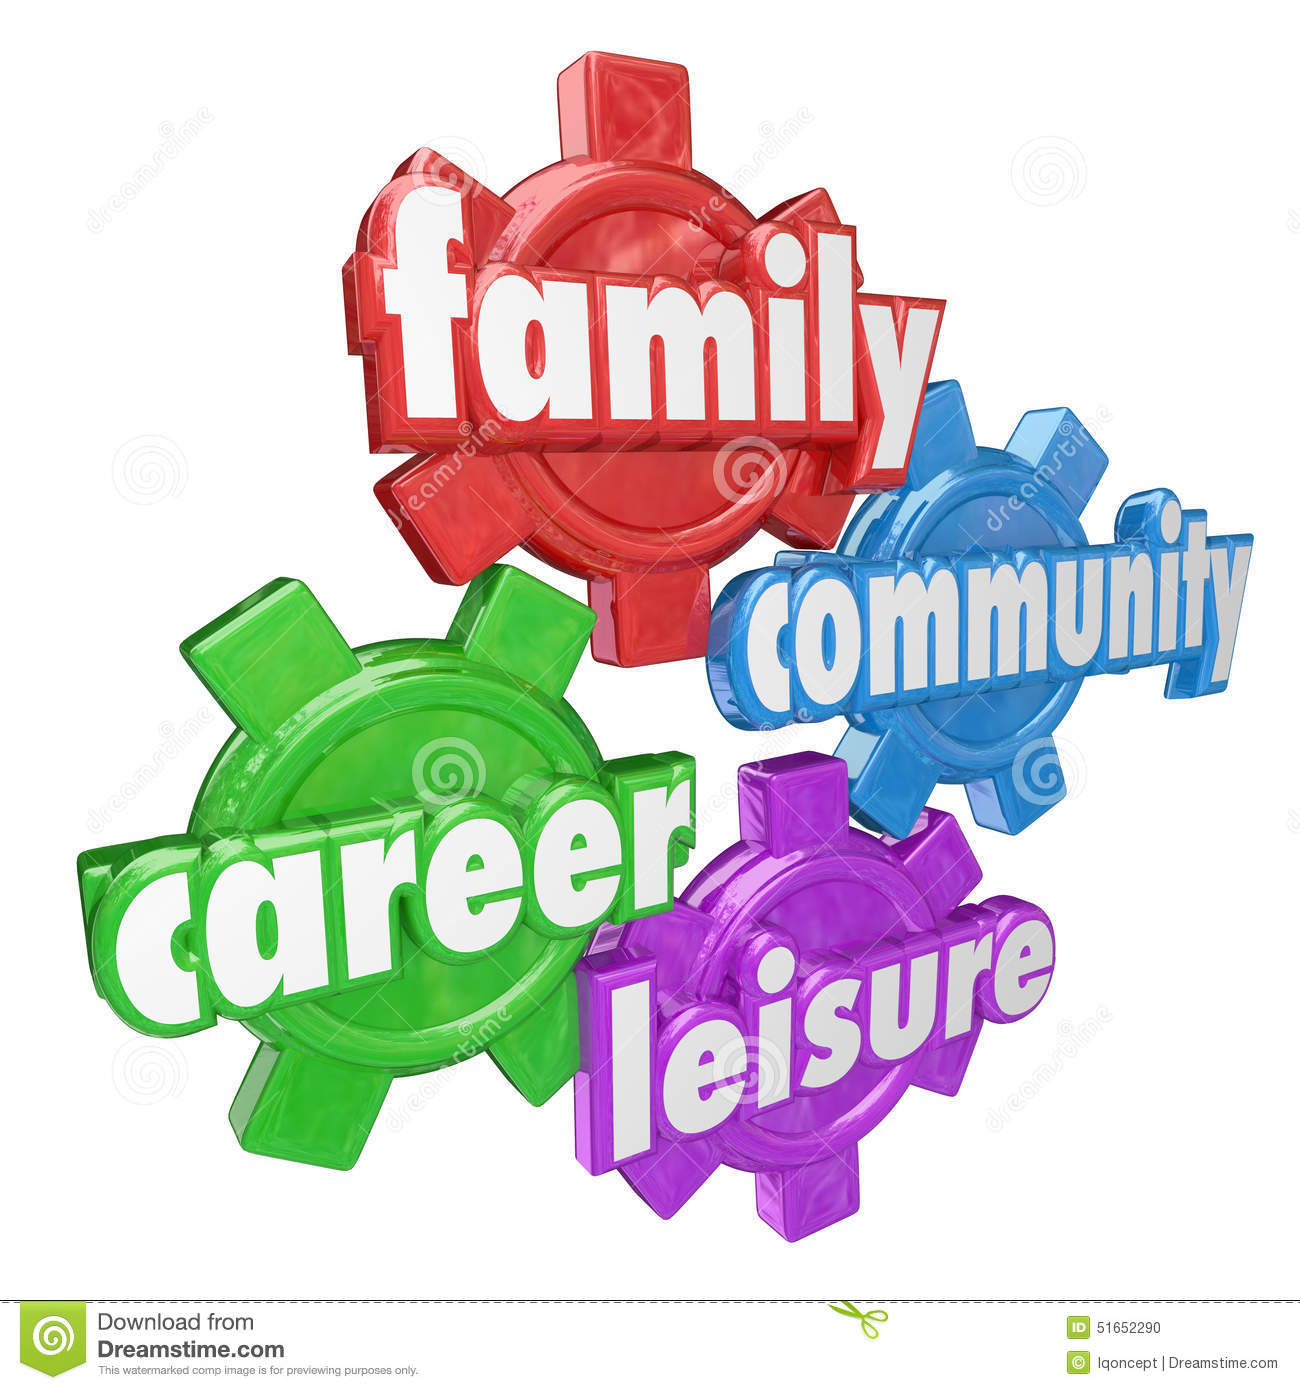 Family Career Community Leisure Words Spending Balancing Time Ge.